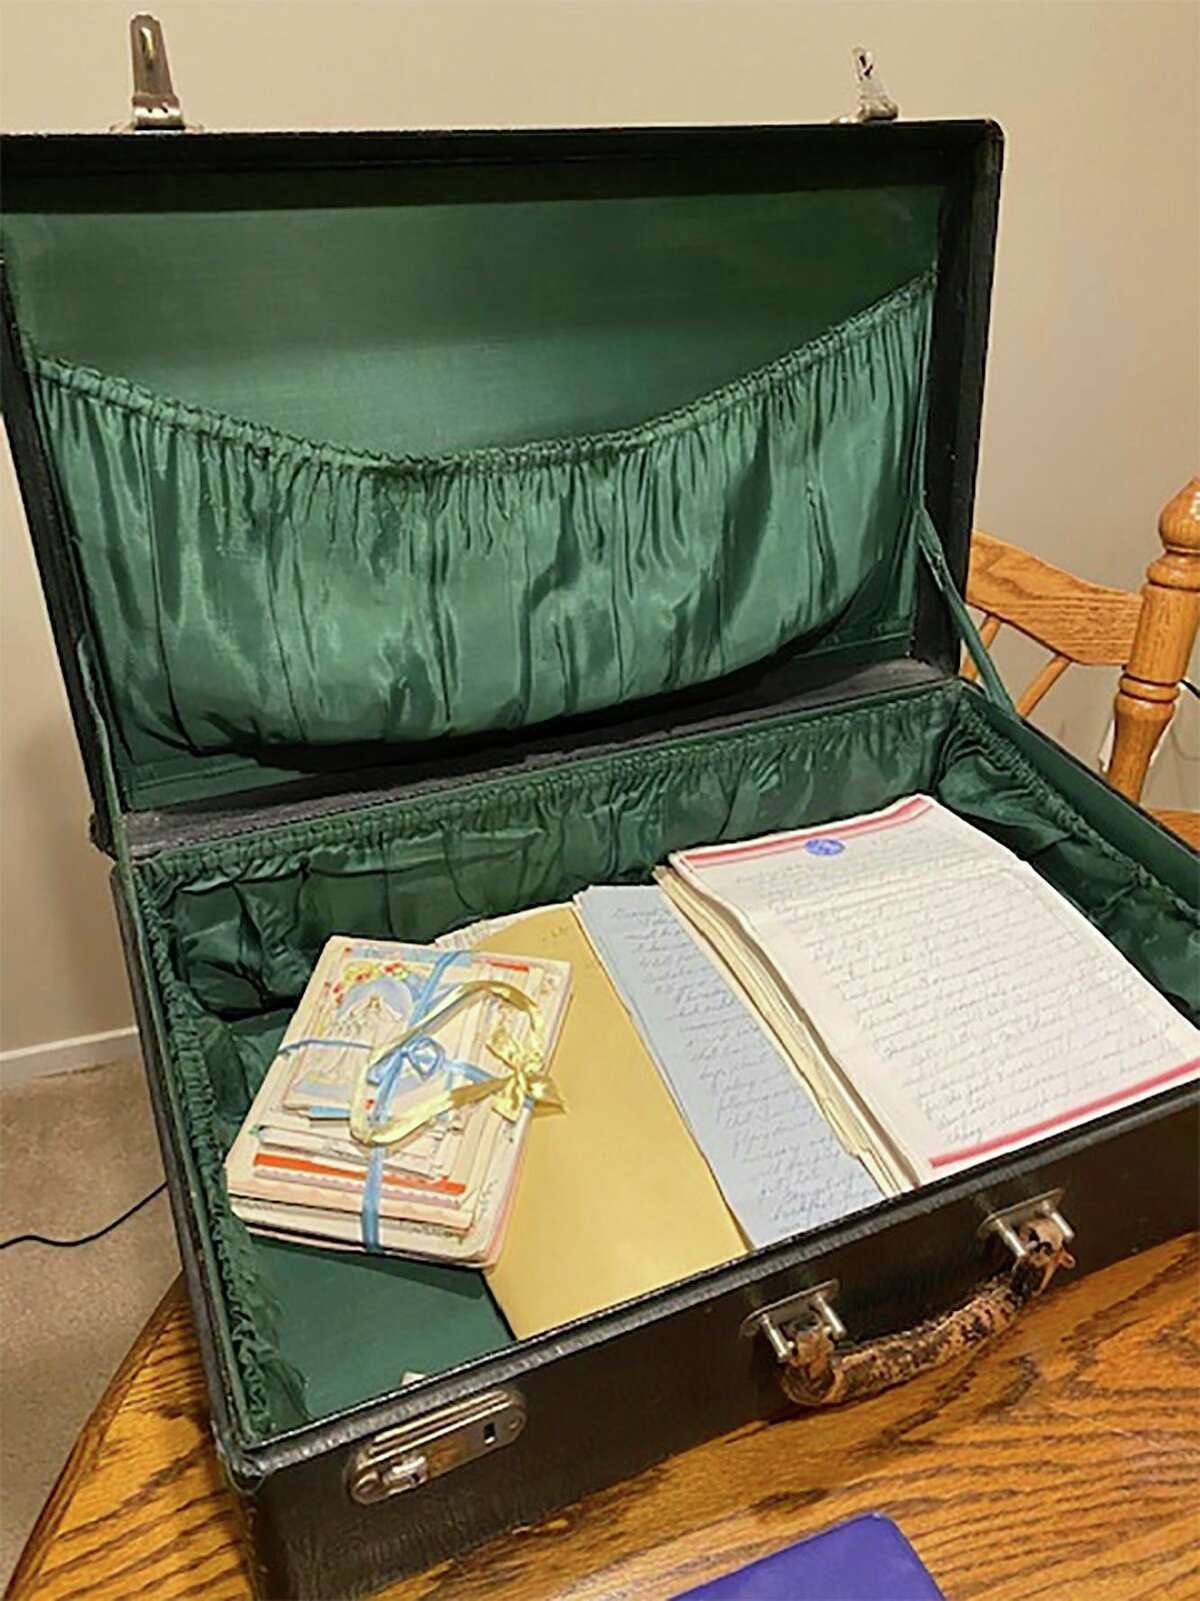 Abattered suitcase,circa 1940s,that sat inan attic for decades contained letters written byJoseph Brakorato his future wife, Helen, and vice versa, during in World War II.(Courtesy photo/Cathy Johnson)